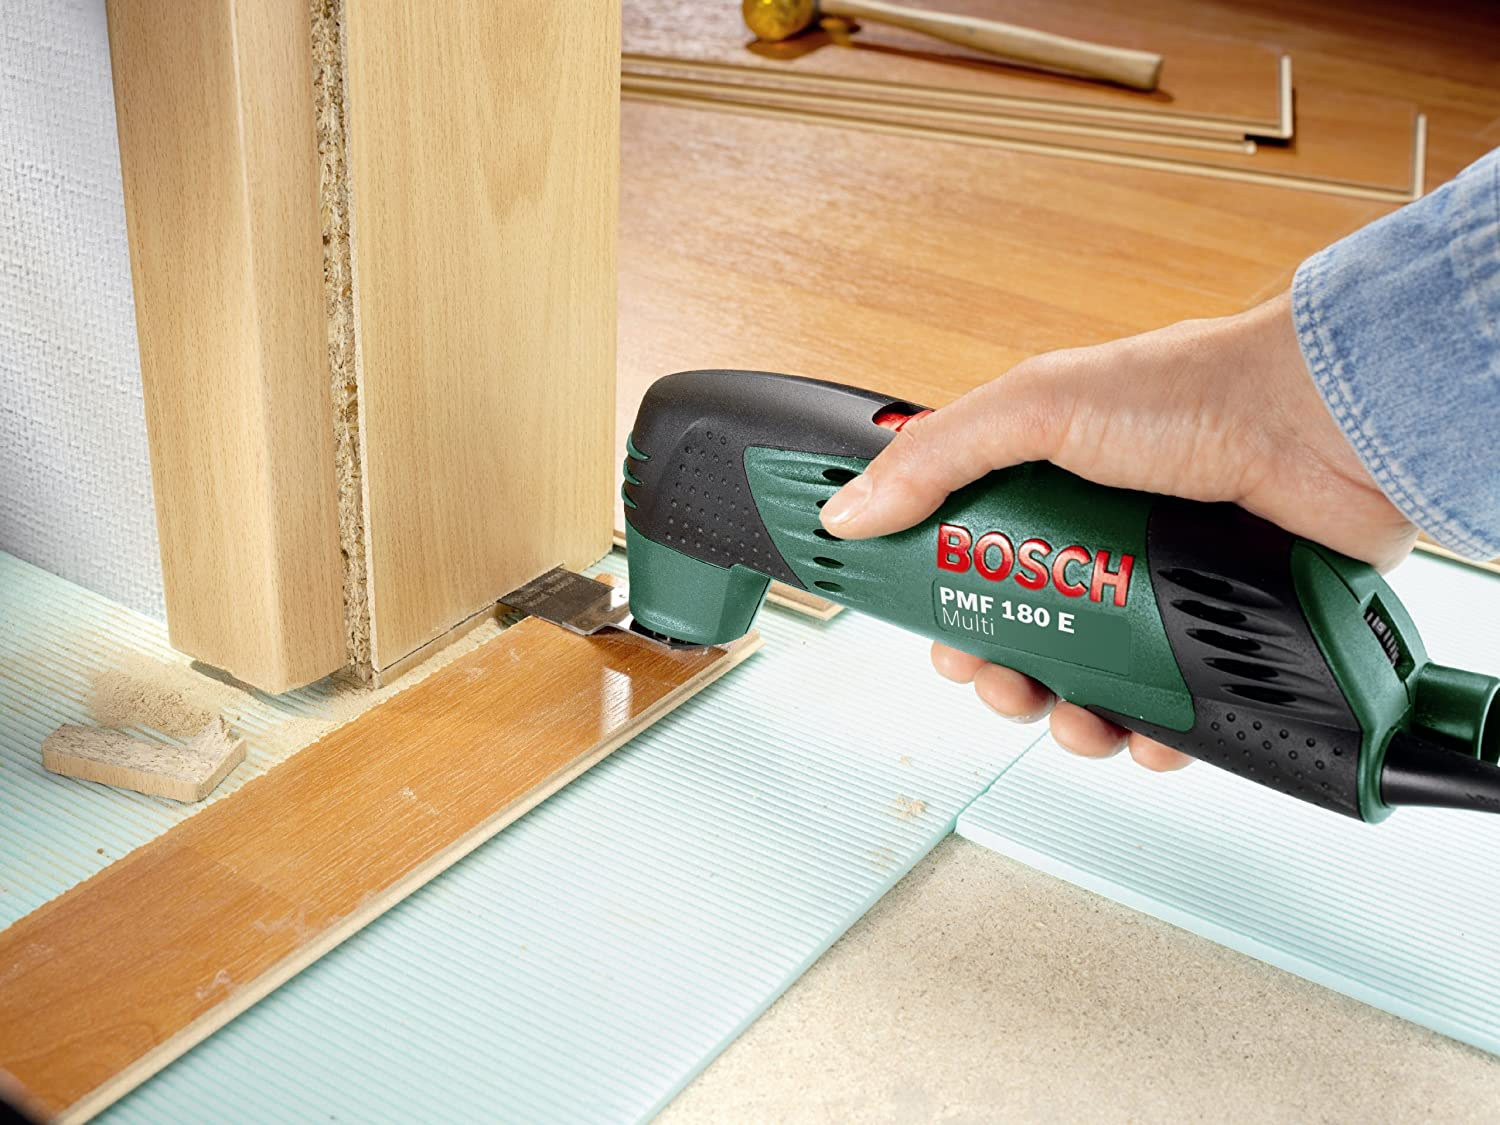 Bosch Pmf 180 E Multifunctional Allrounder Oscillating Multi Tool With Cutting Discs Saw Blades And Discontinued By Manufacturer Amazon Co Uk Diy